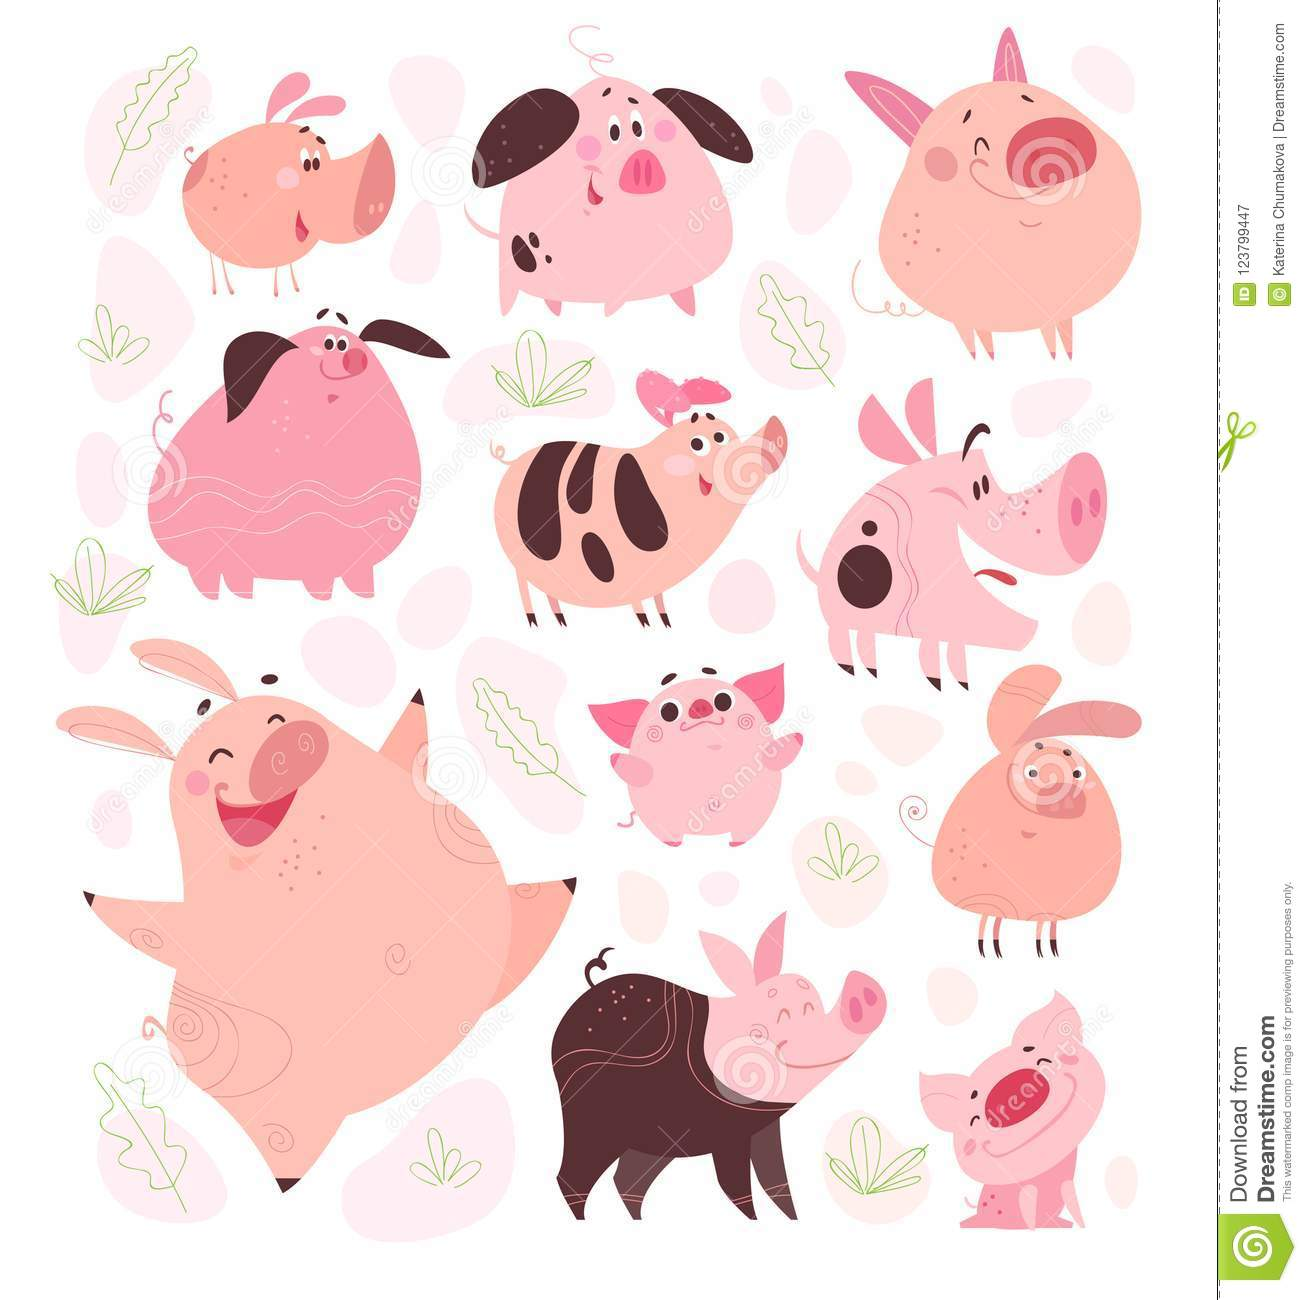 vector set of funny flat different pig characters design isolated on